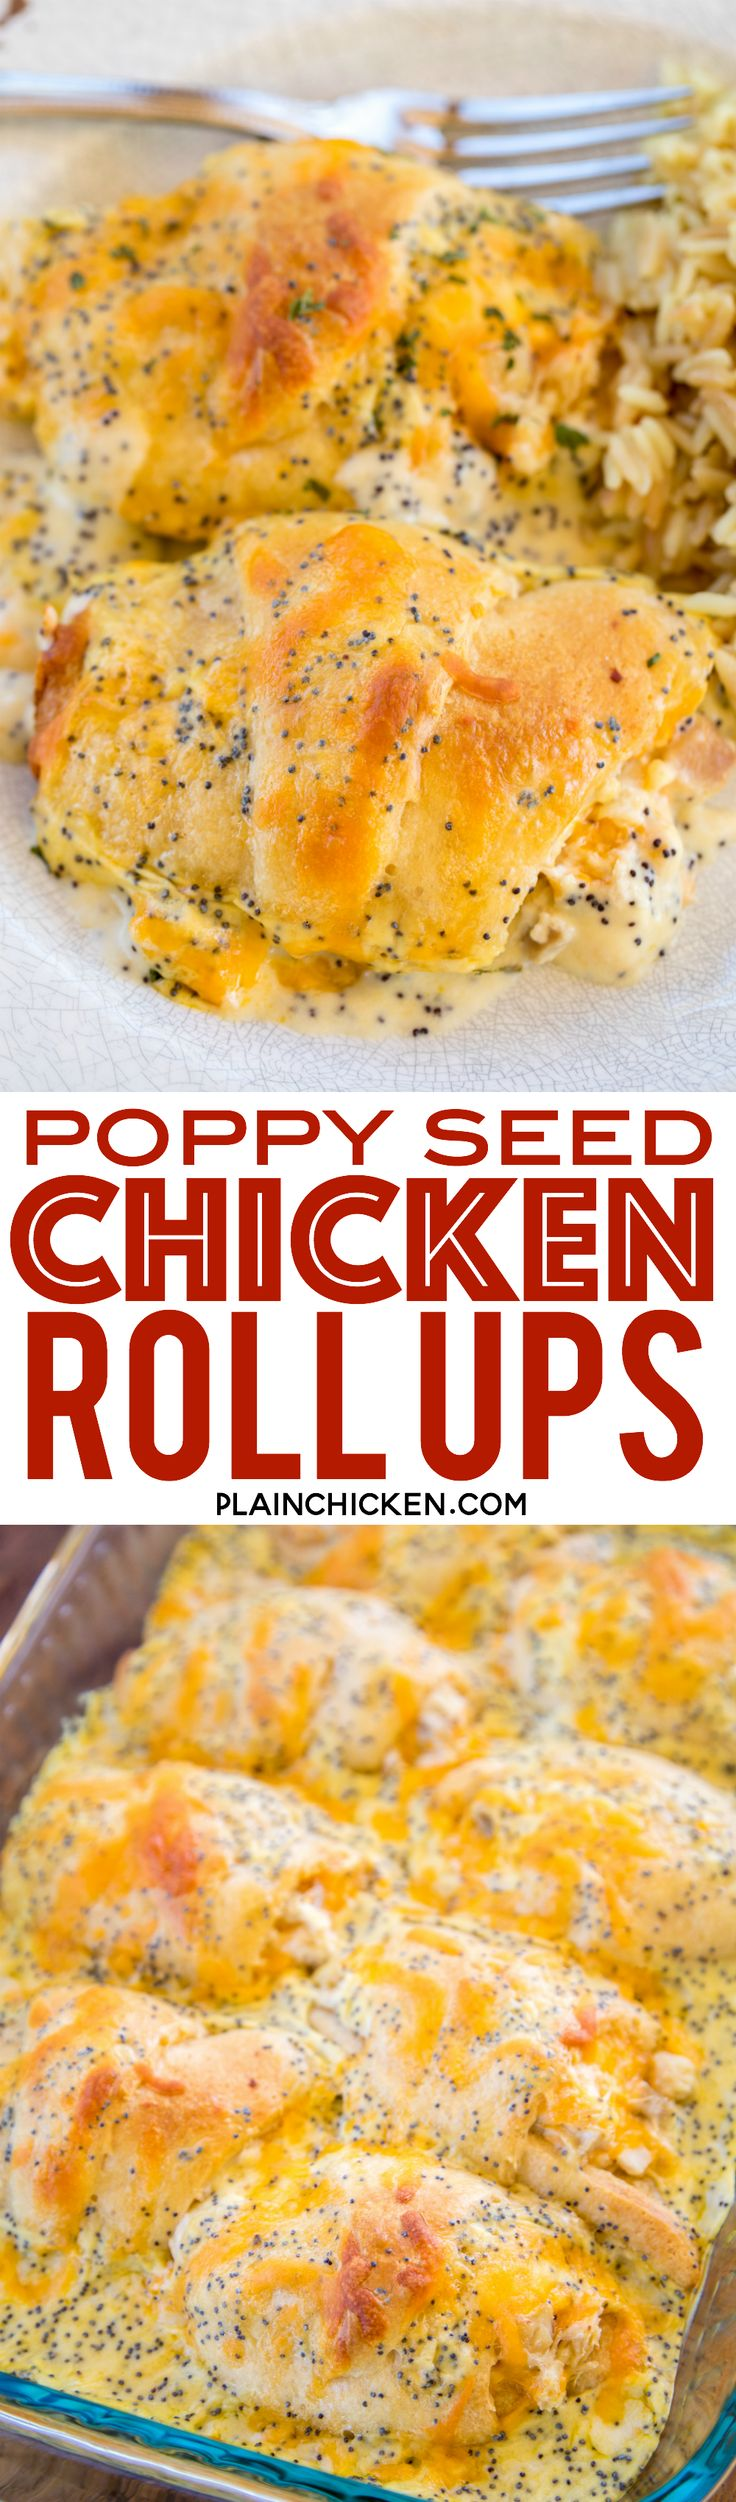 Poppy Seed Chicken Roll Ups - heaven in a pan!! Chicken and cream cheese wrapped in crescent rolls and topped cream of chicken soup, milk, cheese and poppy seeds. These are on the menu at least once a month! Everyone gobbles these up - we never have any leftovers. Our family's favorite chicken casserole!! ~ Plain Chicken